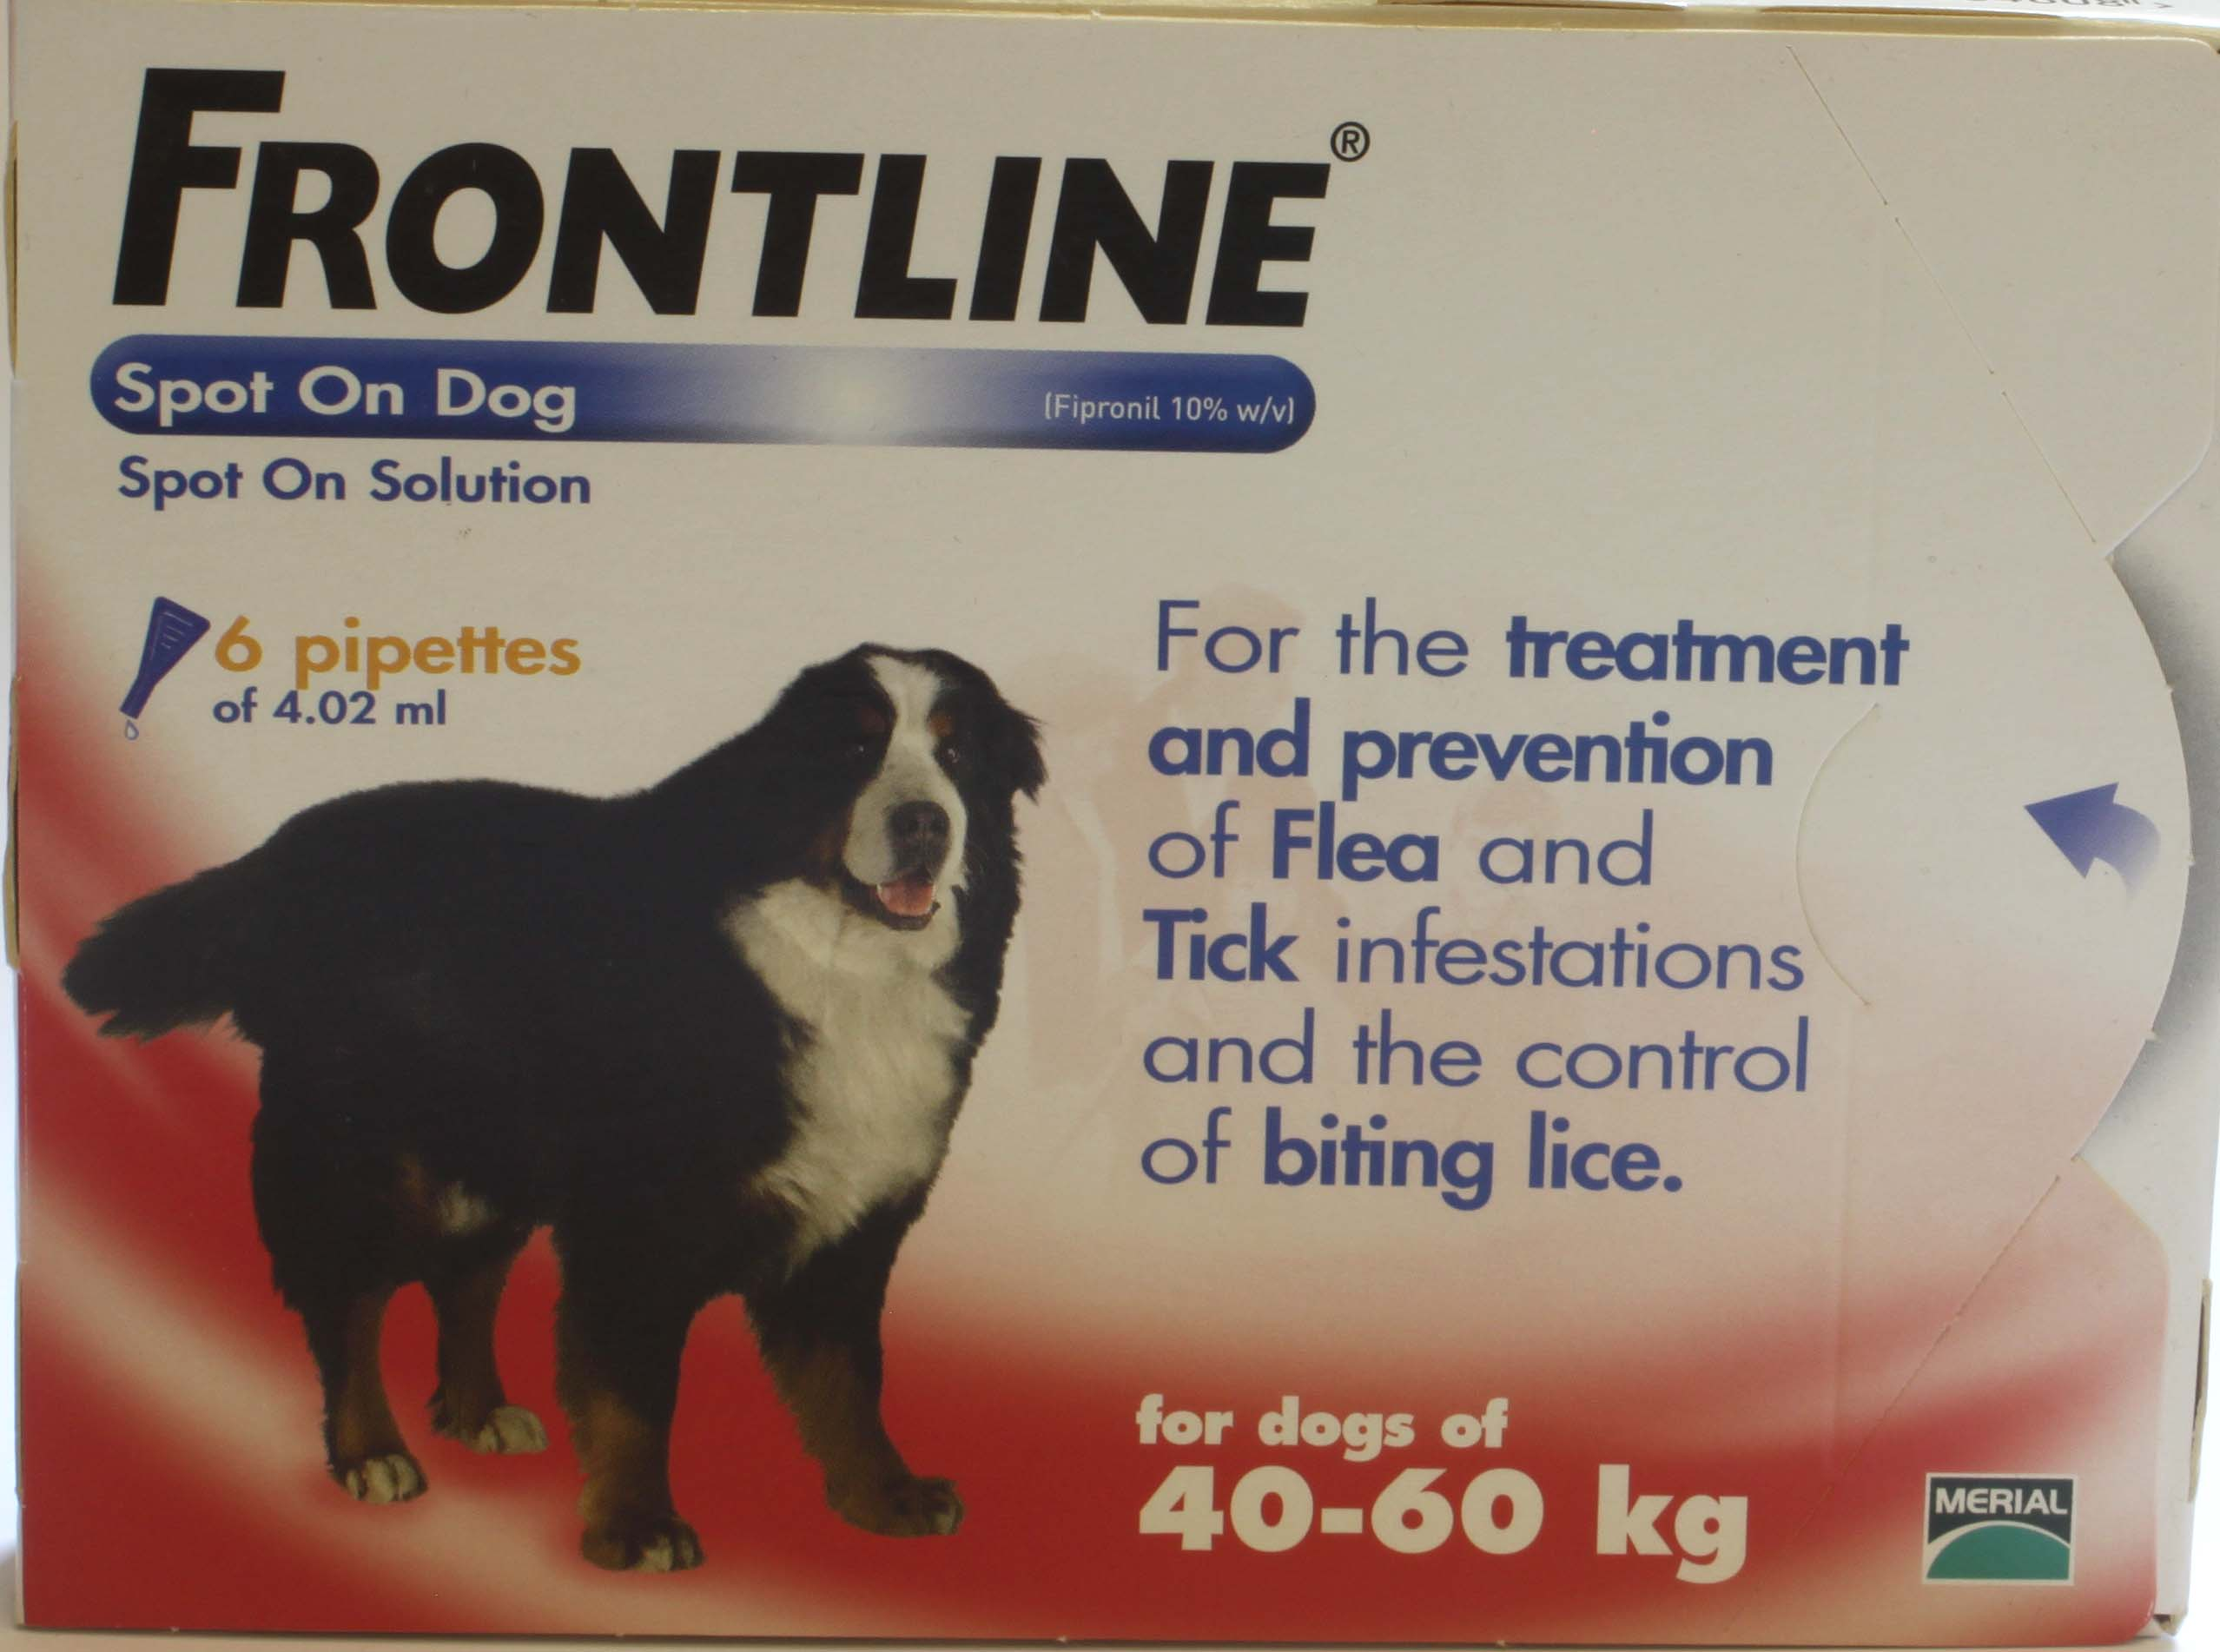 Frontline Spot On Dog Xtra Large Dog 6 pipettes